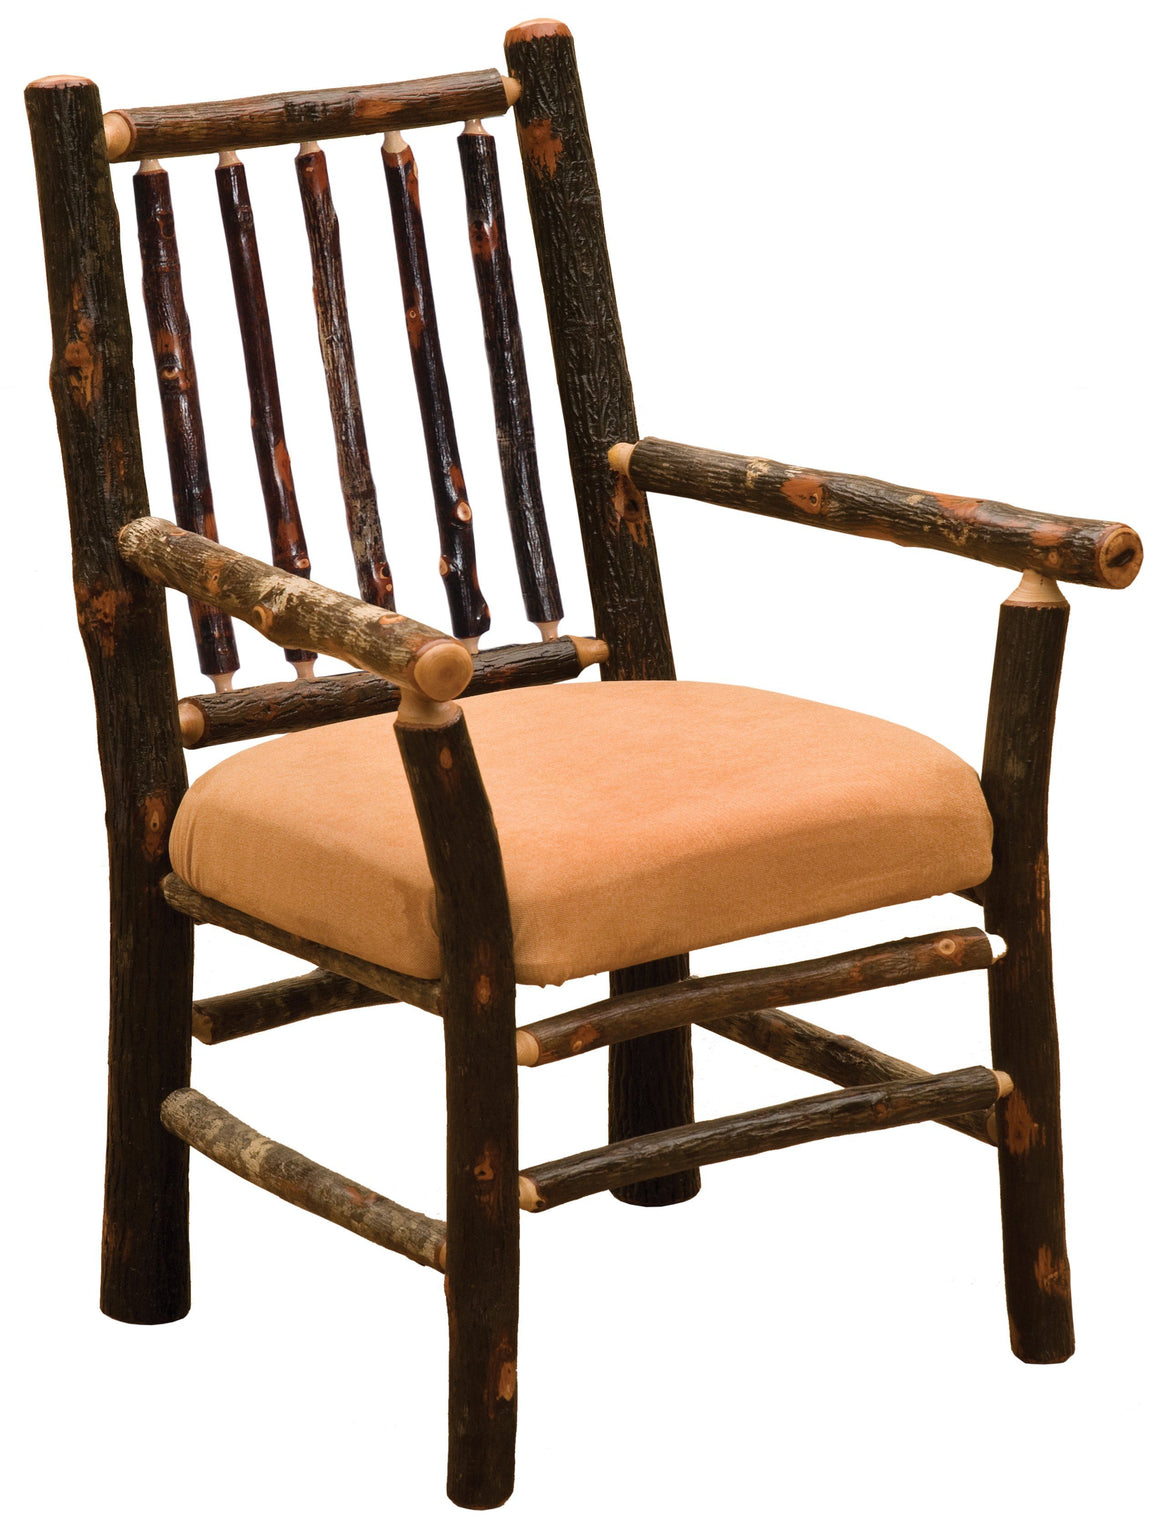 Natural Hickory Log Spoke Back Arm Chair - Upholstered Seat - Standard Finish - Rustic Deco Incorporated